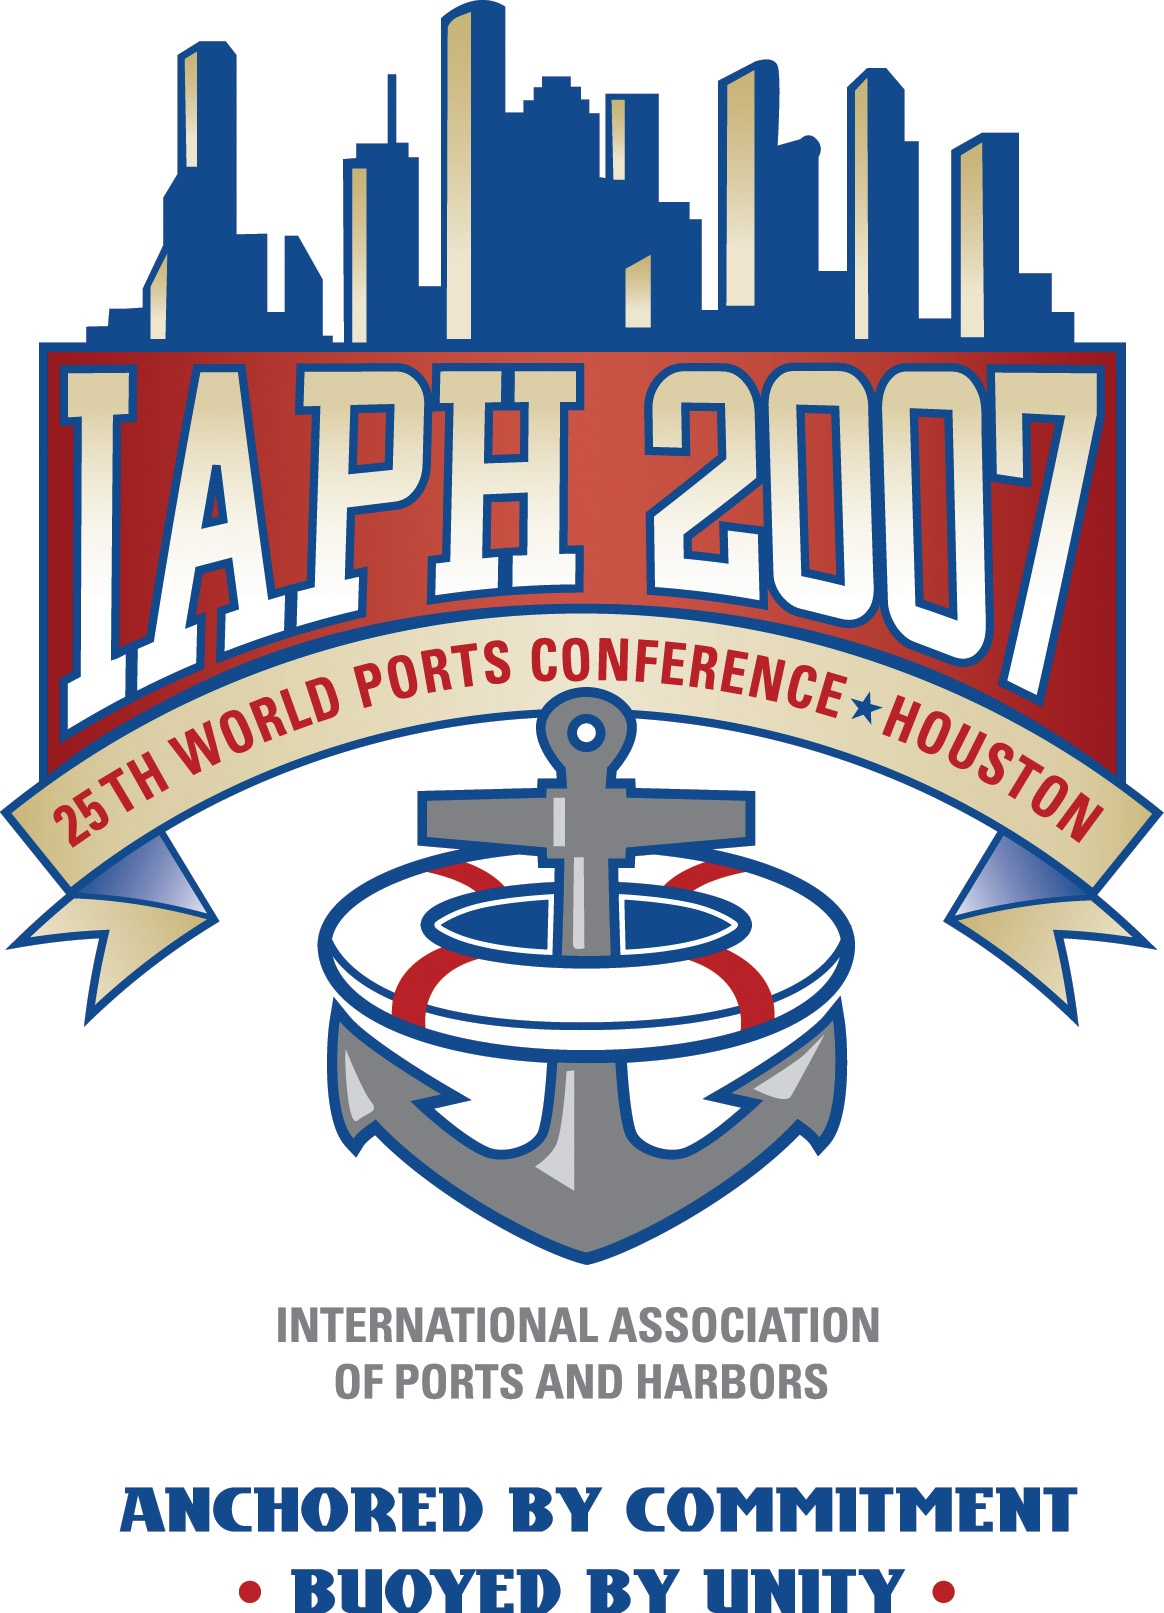 International Association of Ports and Harbors Logo